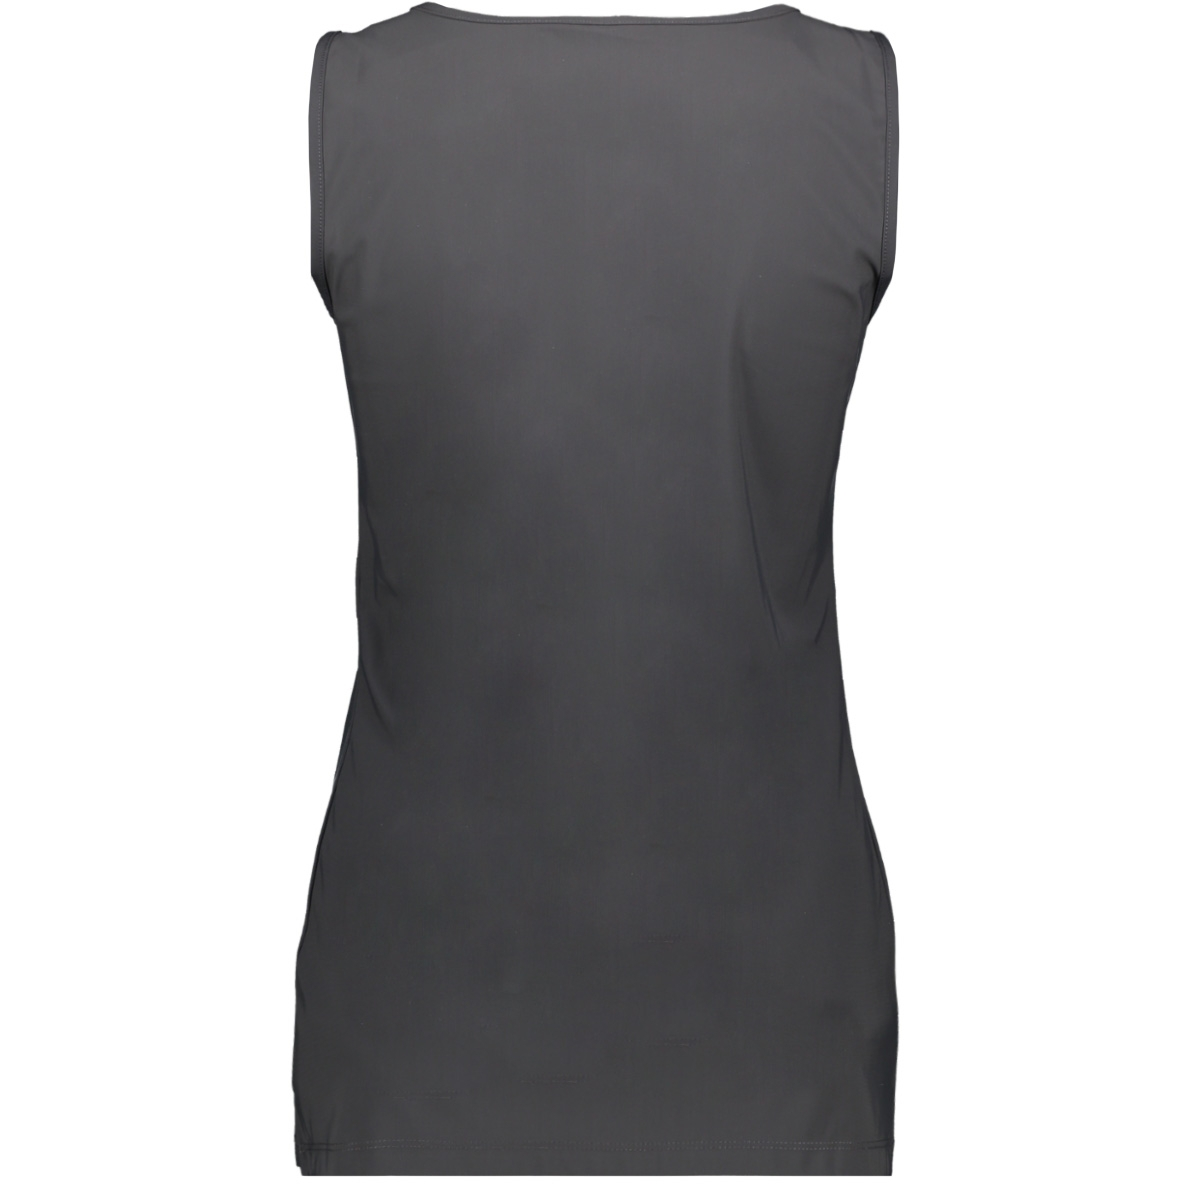 holly travel singlet 201 zoso top charcoal